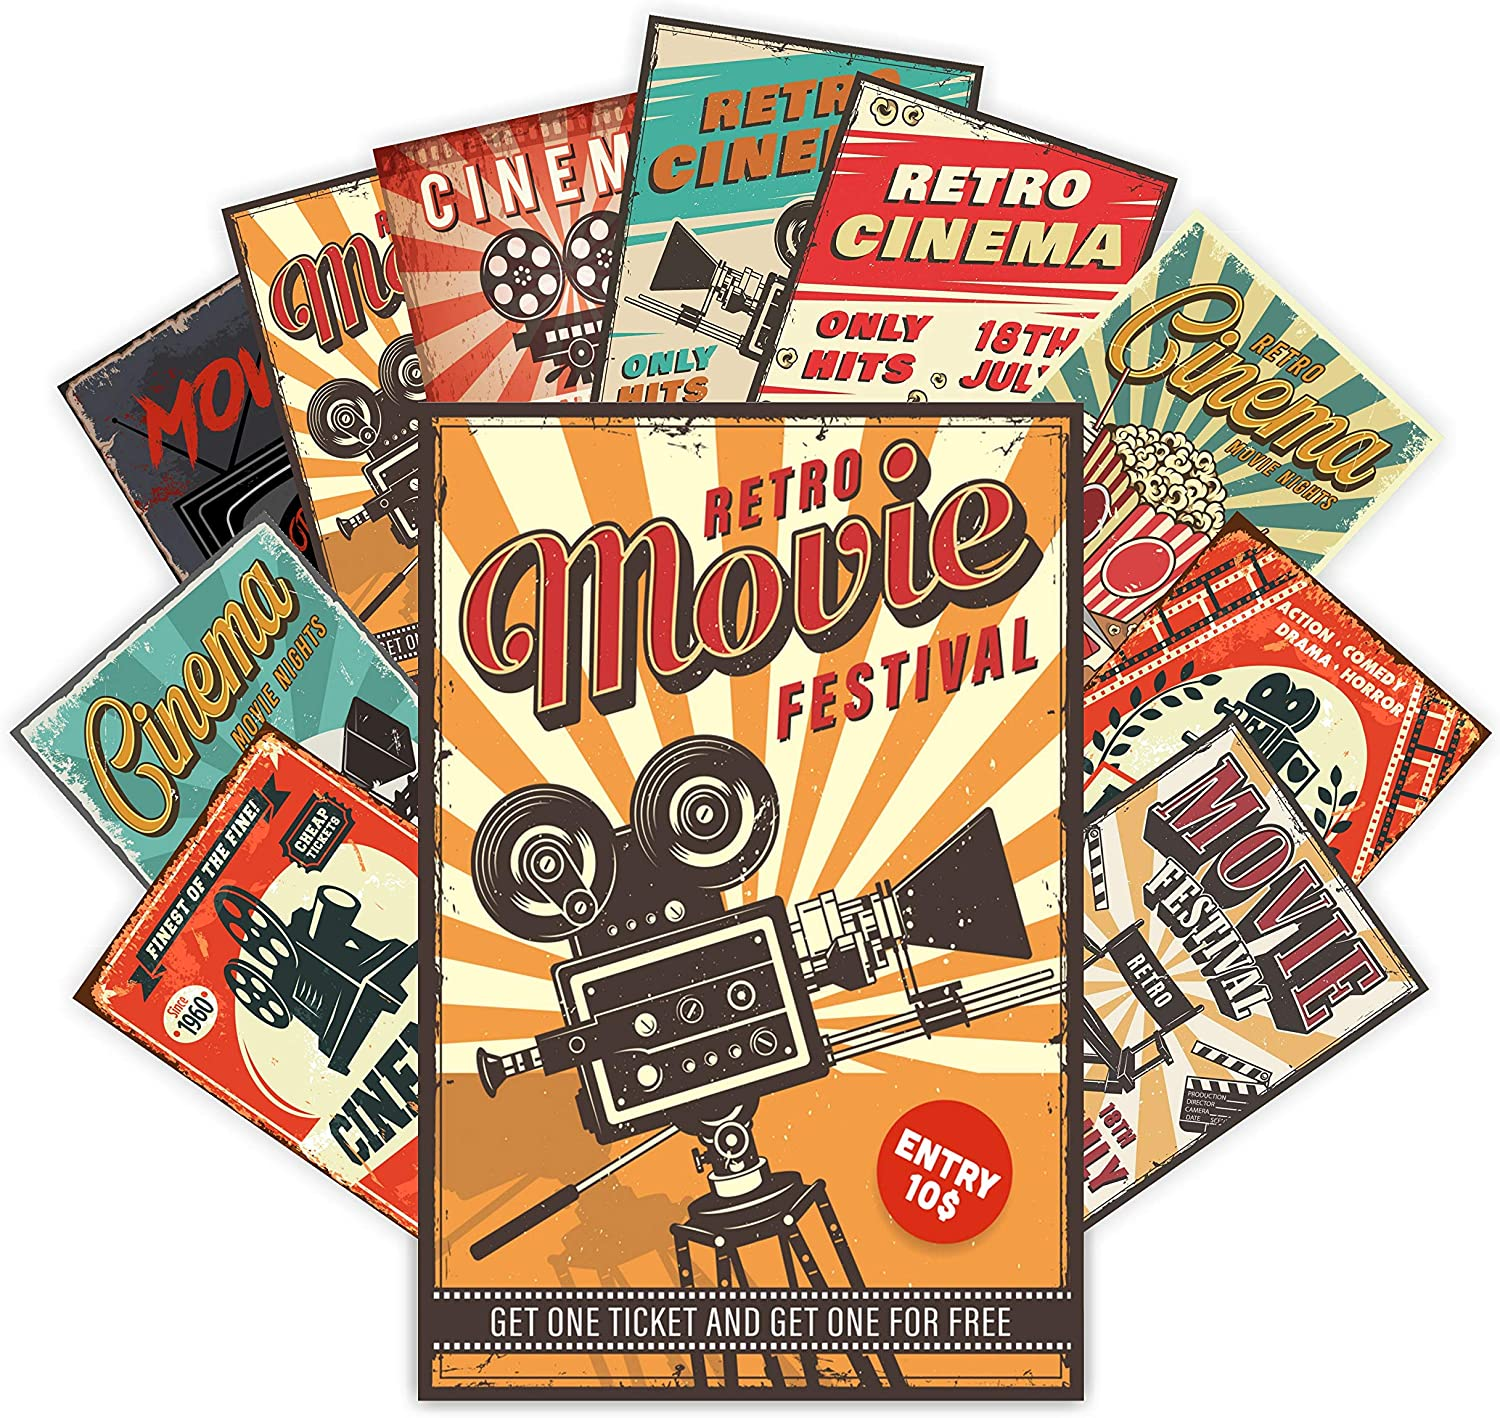 HK Studio Vintage Posters of Classic Movie | Self-Adhesive, Vinyl Decal, Indie Posters for Room Aesthetic 90s | Indie Room Decor Wall Collage Kit | Old School, Retro Movie Posters | 7.8